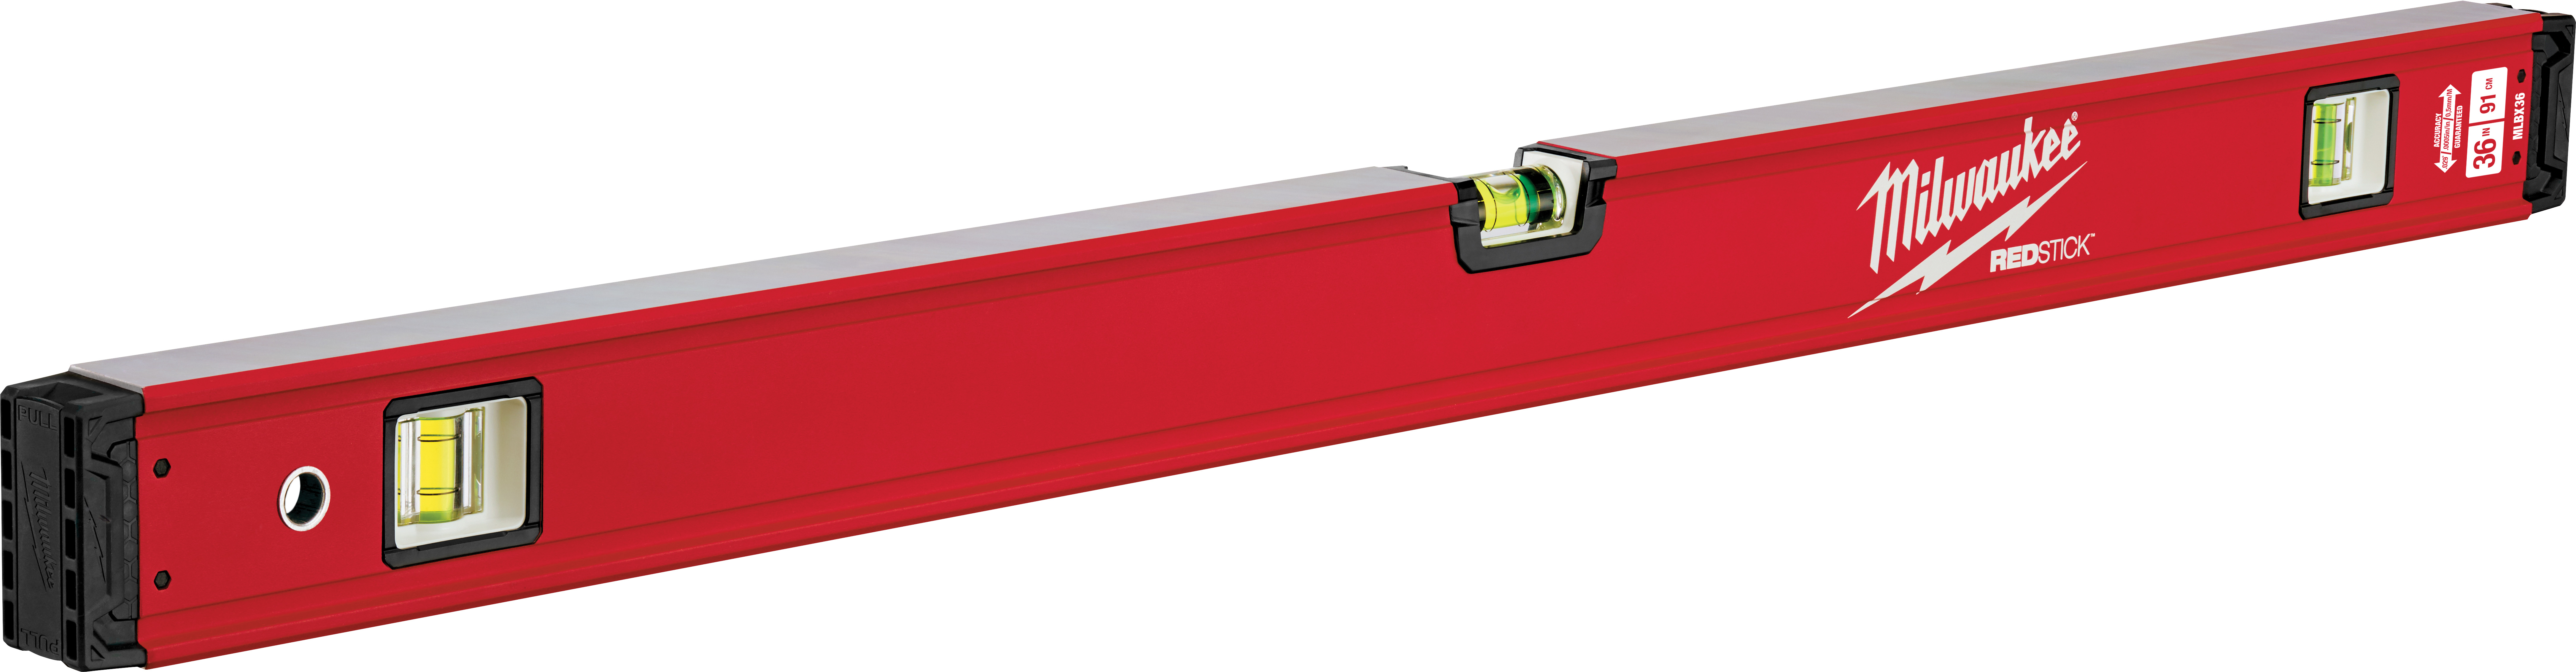 Milwaukee® REDSTICK™ MLBX36 Box Level, 36 in L, 3 Vials, Aluminum, (1) Level, (2) Plumb Vial Position, 0.0005 in/in Accuracy